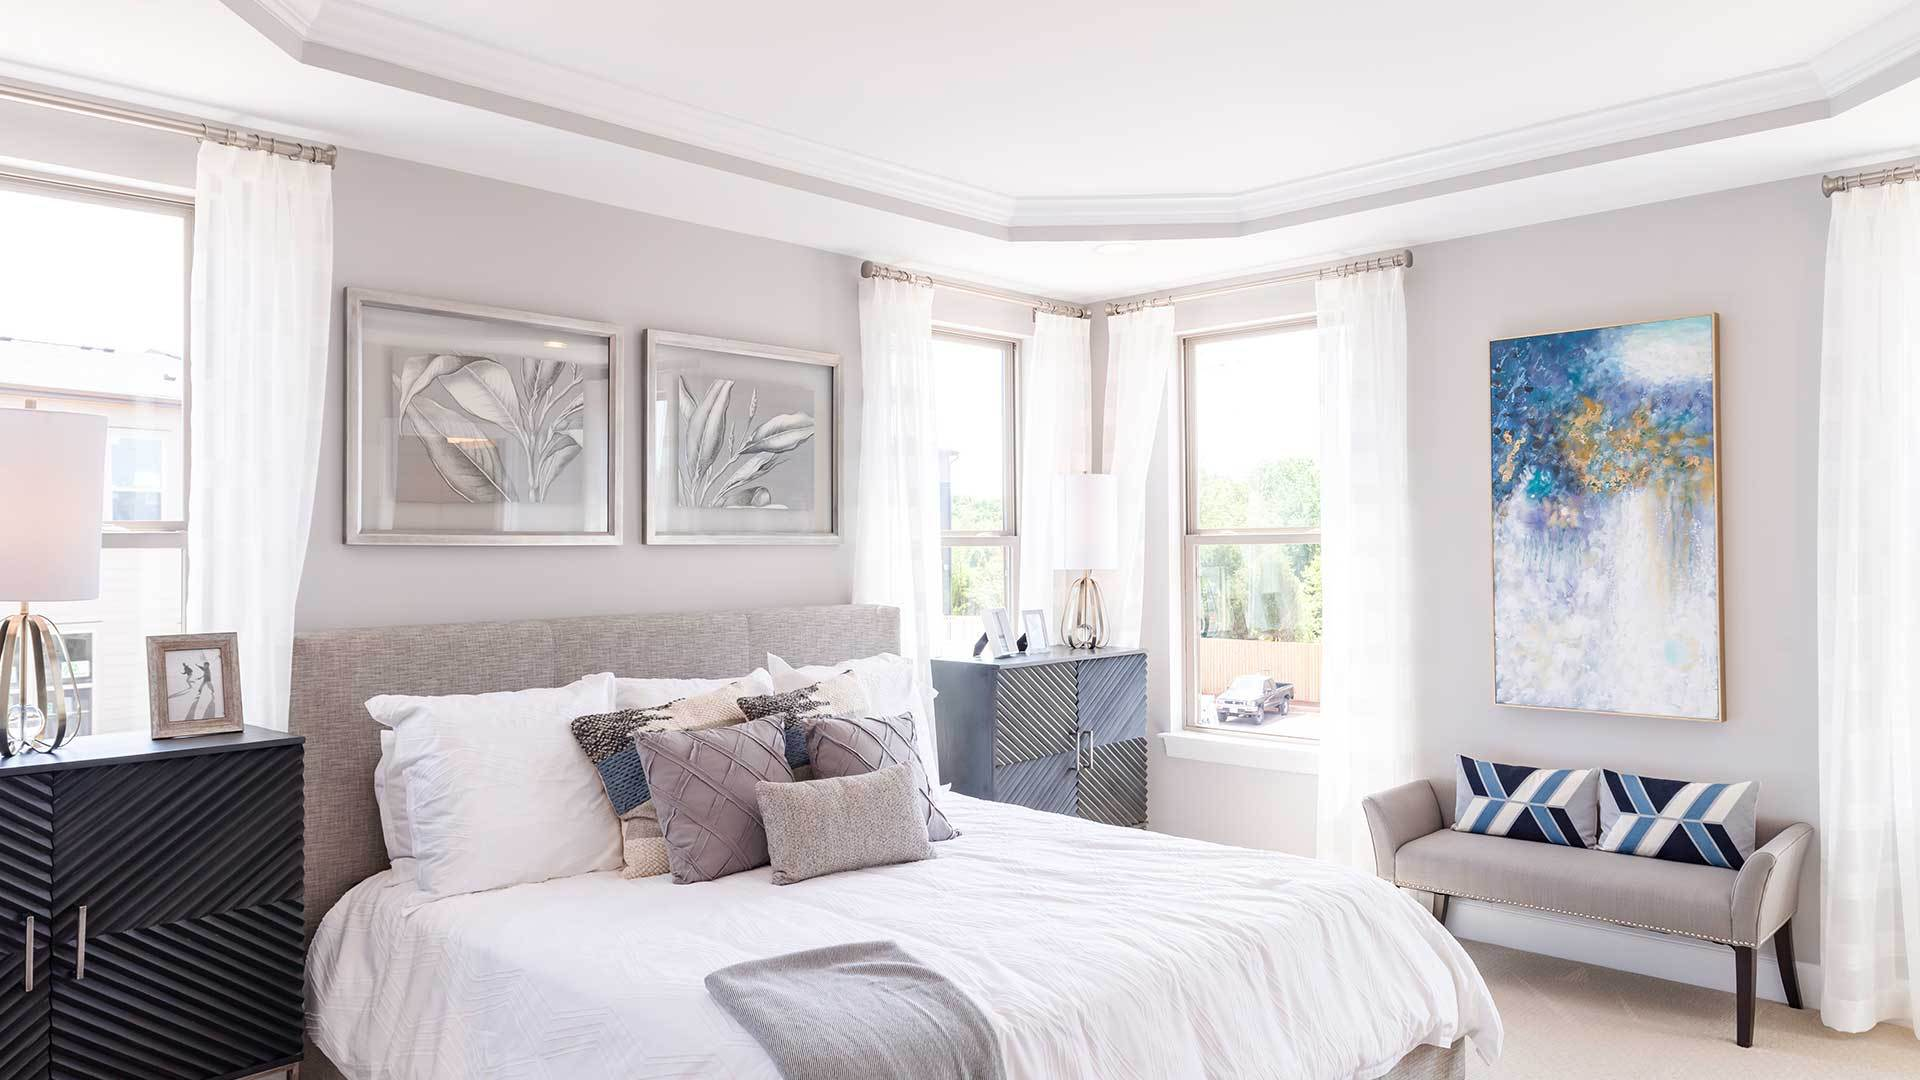 Bedroom featured in the Renata By Stanley Martin Homes in Washington, VA